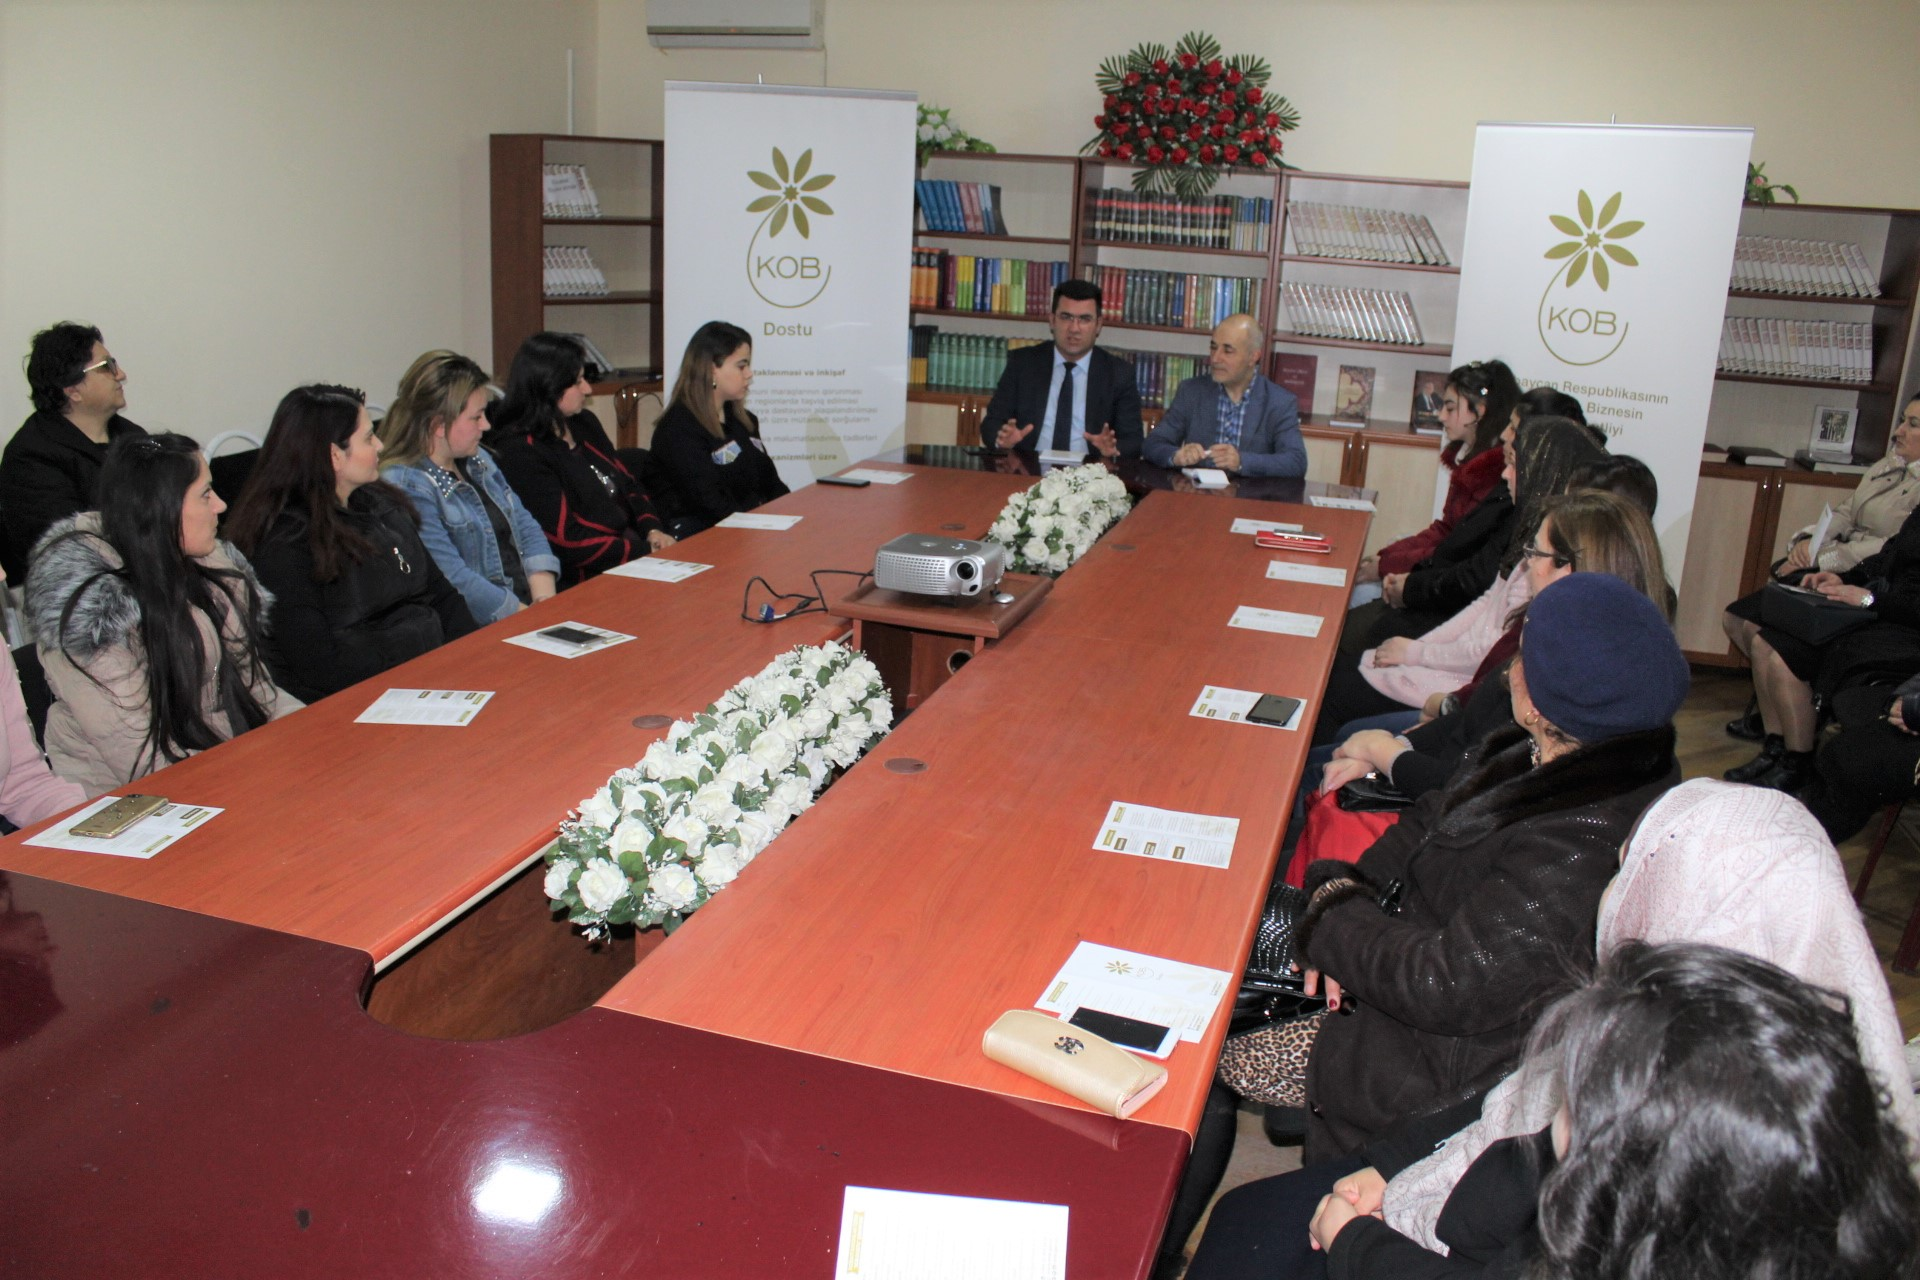 Further Support by SMBDA to support entrepreneurial activity among women